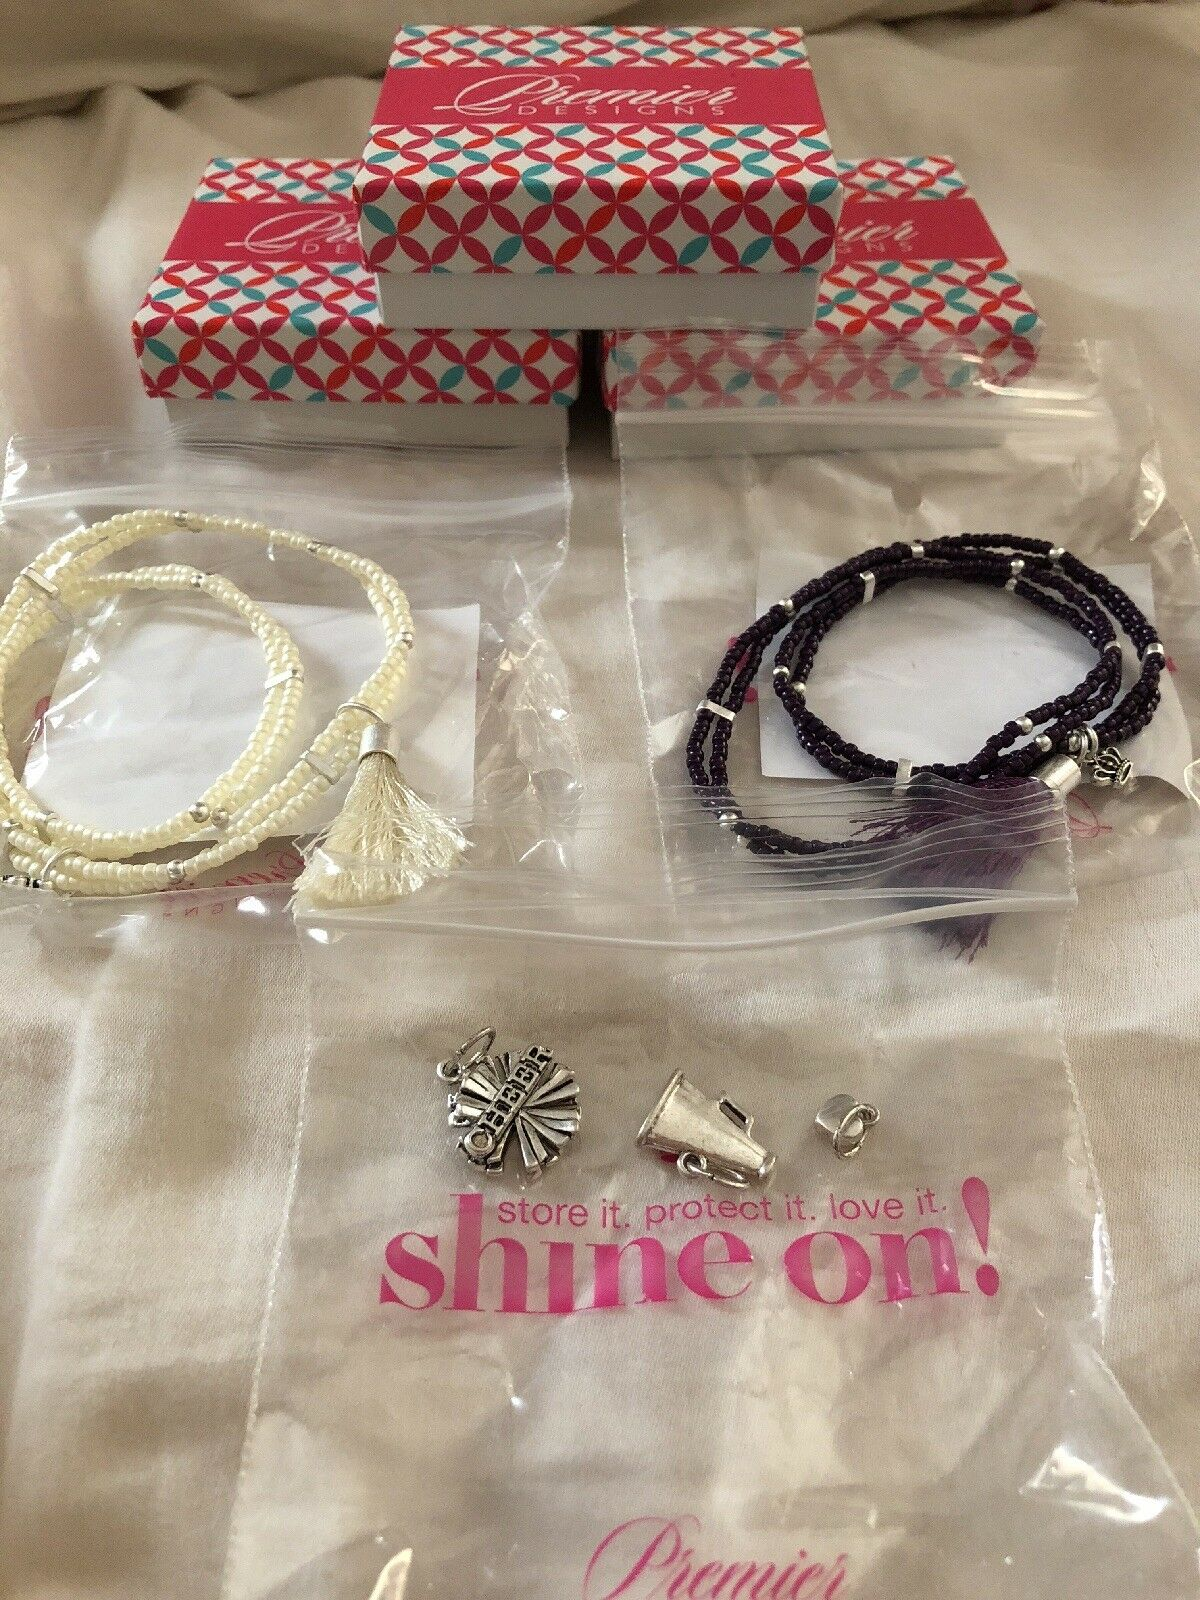 Premier Designs color Play Bracelets- Purple & White w Cheer Charms NIB